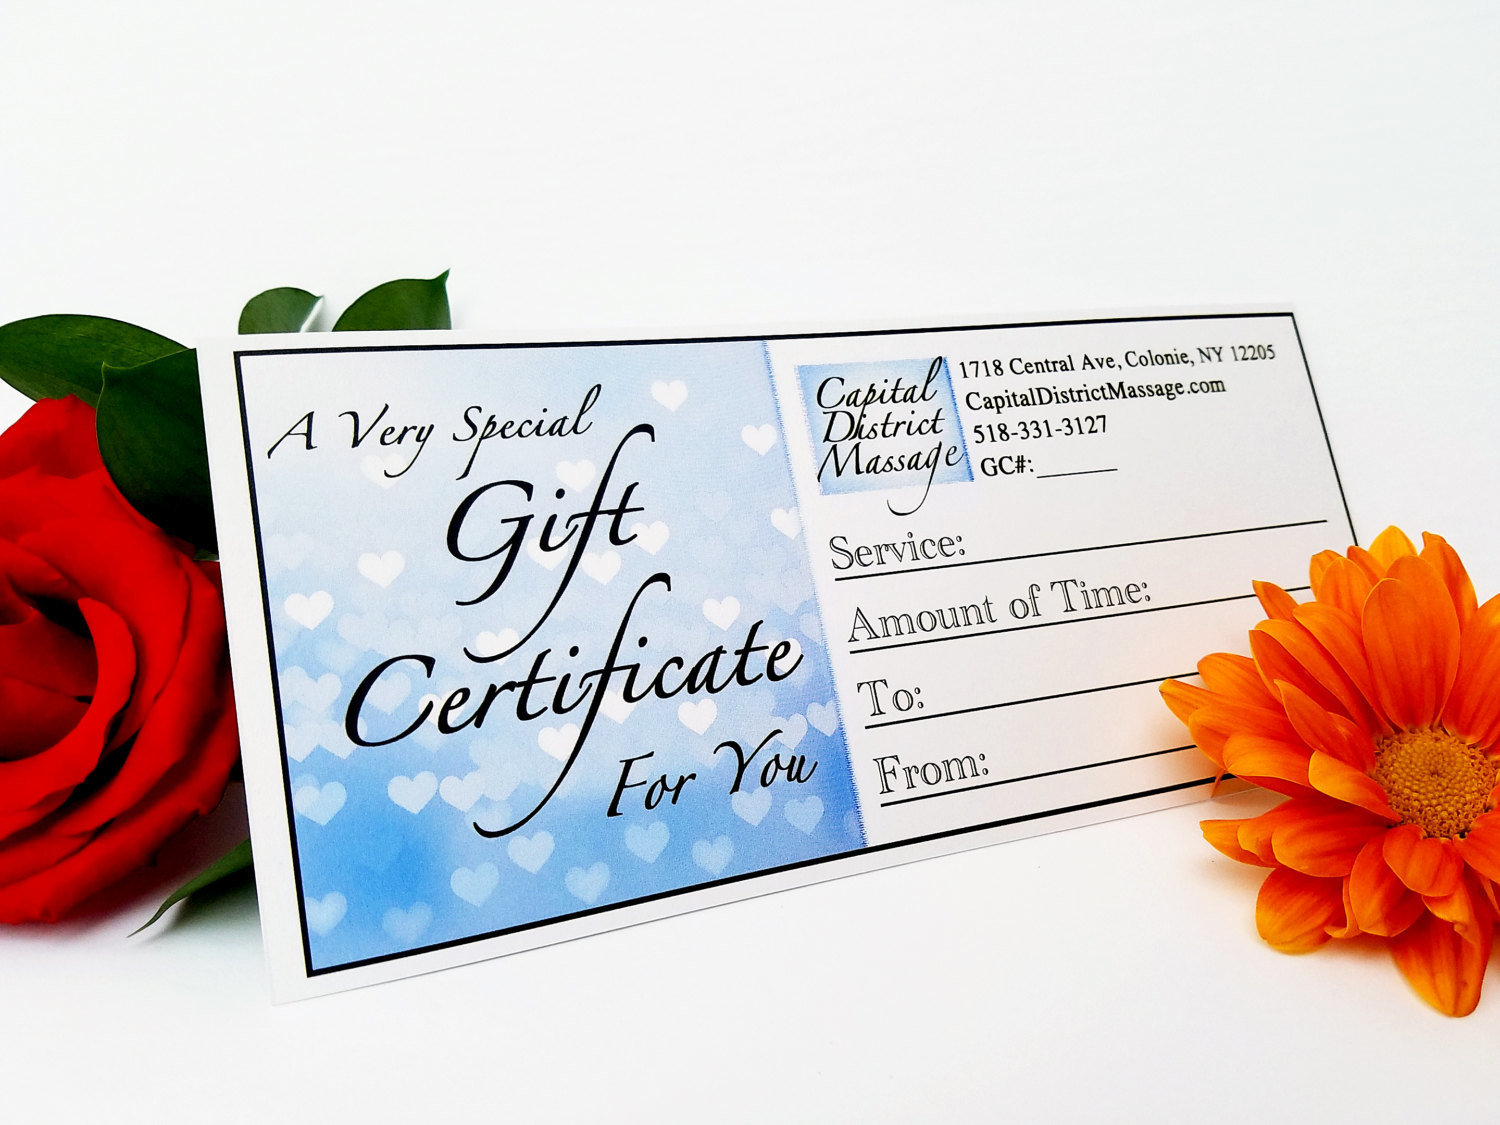 Hot Stone Massage Gift Certificate HSMGC